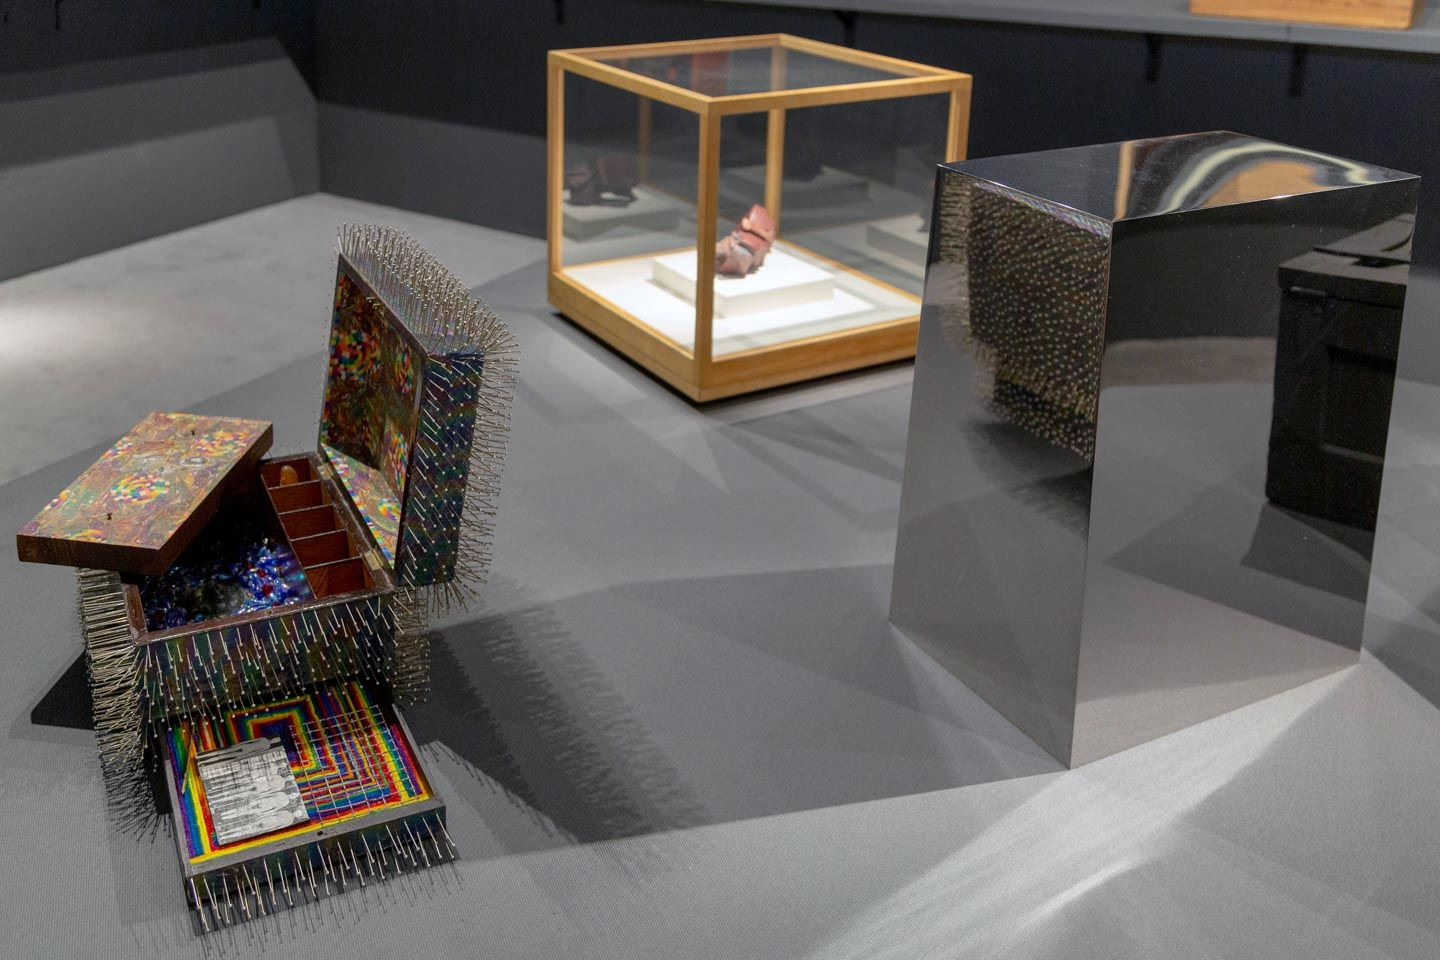 Installation view of Boxes, The Art Show, 2019